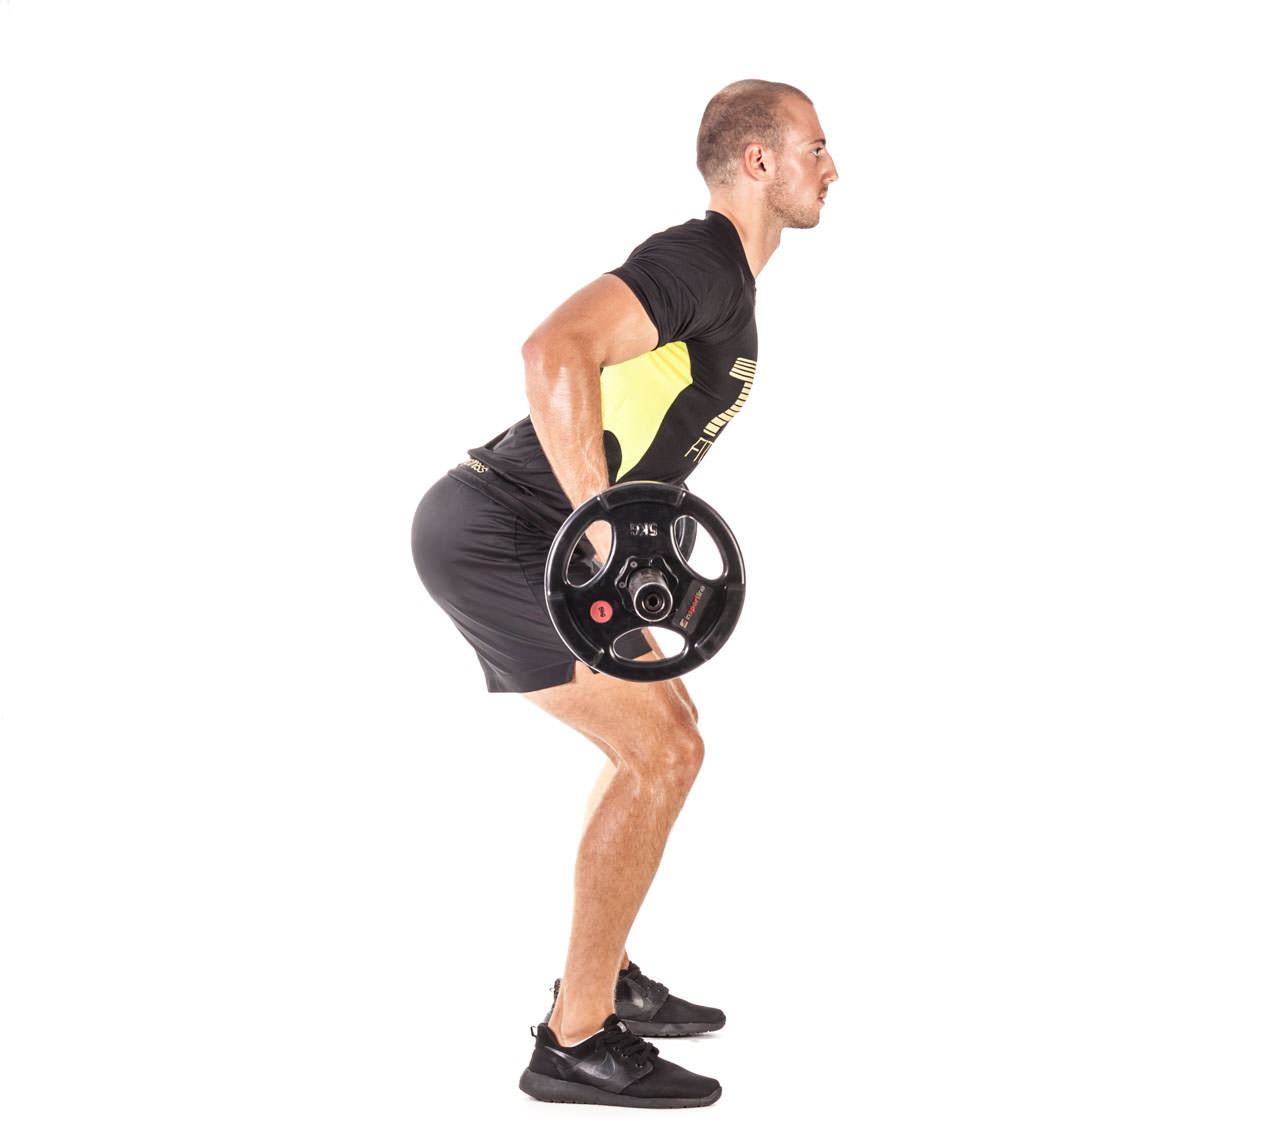 Barbell Bent Over Row (Reverse Grip) frame #5